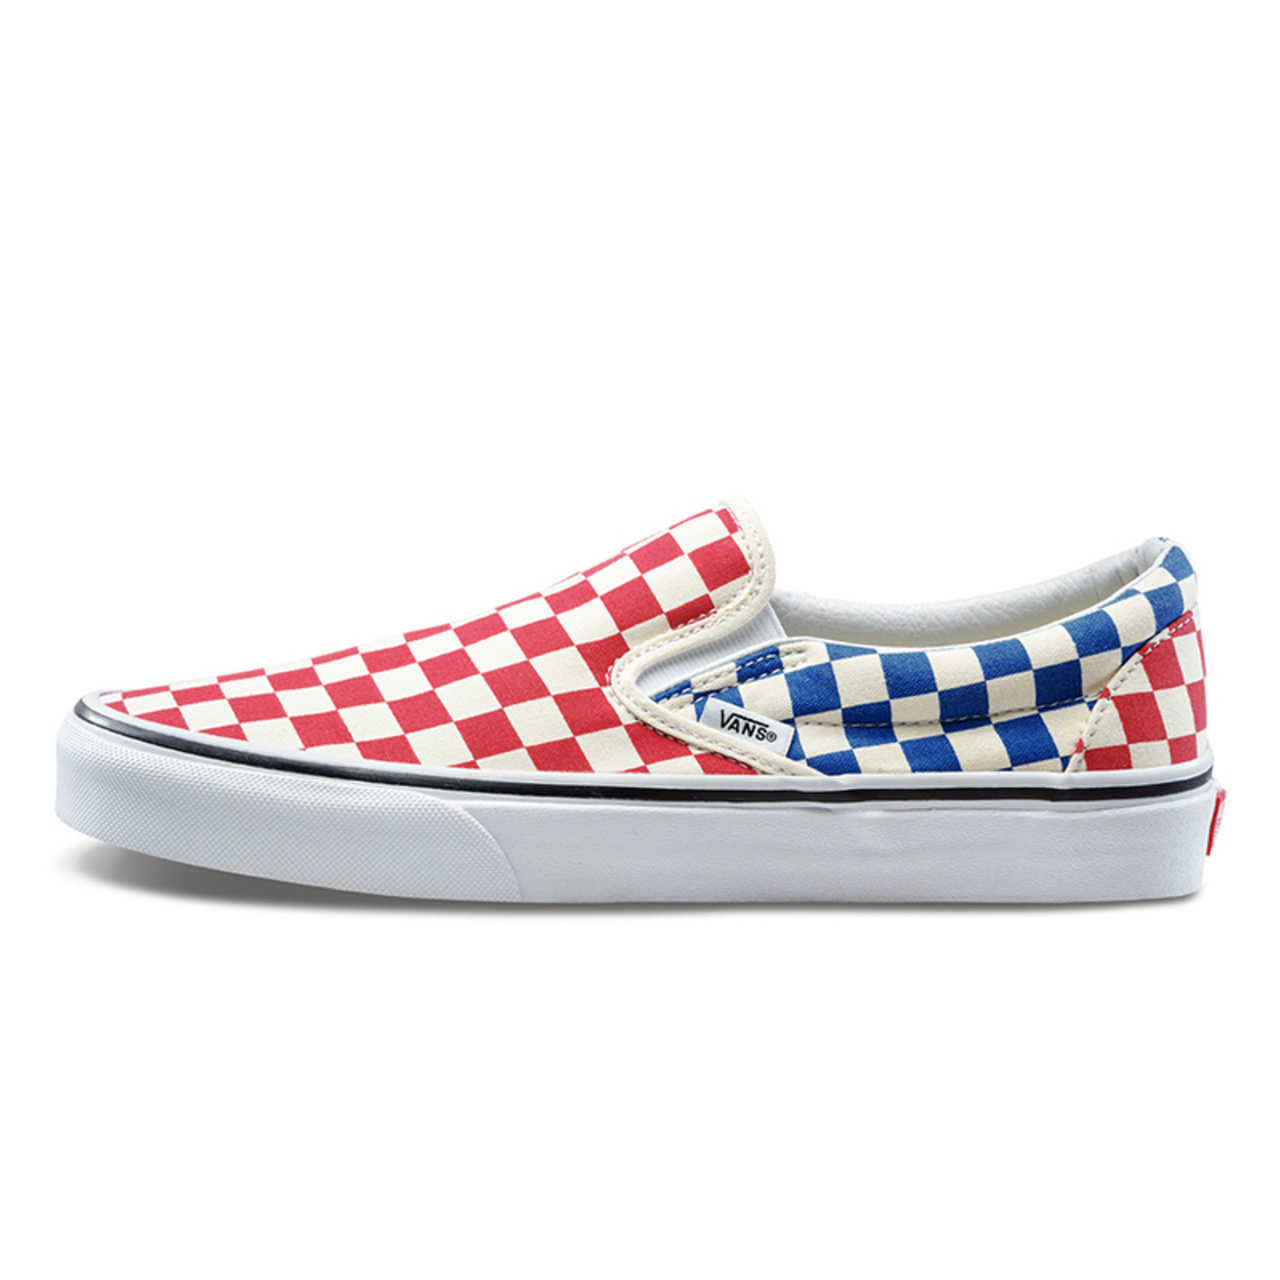 6e0ca5692a Original New Arrival Vans Mens & Womens Classic SLIP-ON Low-top  Skateboarding Shoes Sneakers Canvas Comfortable VN0A38F7QCM/QCS